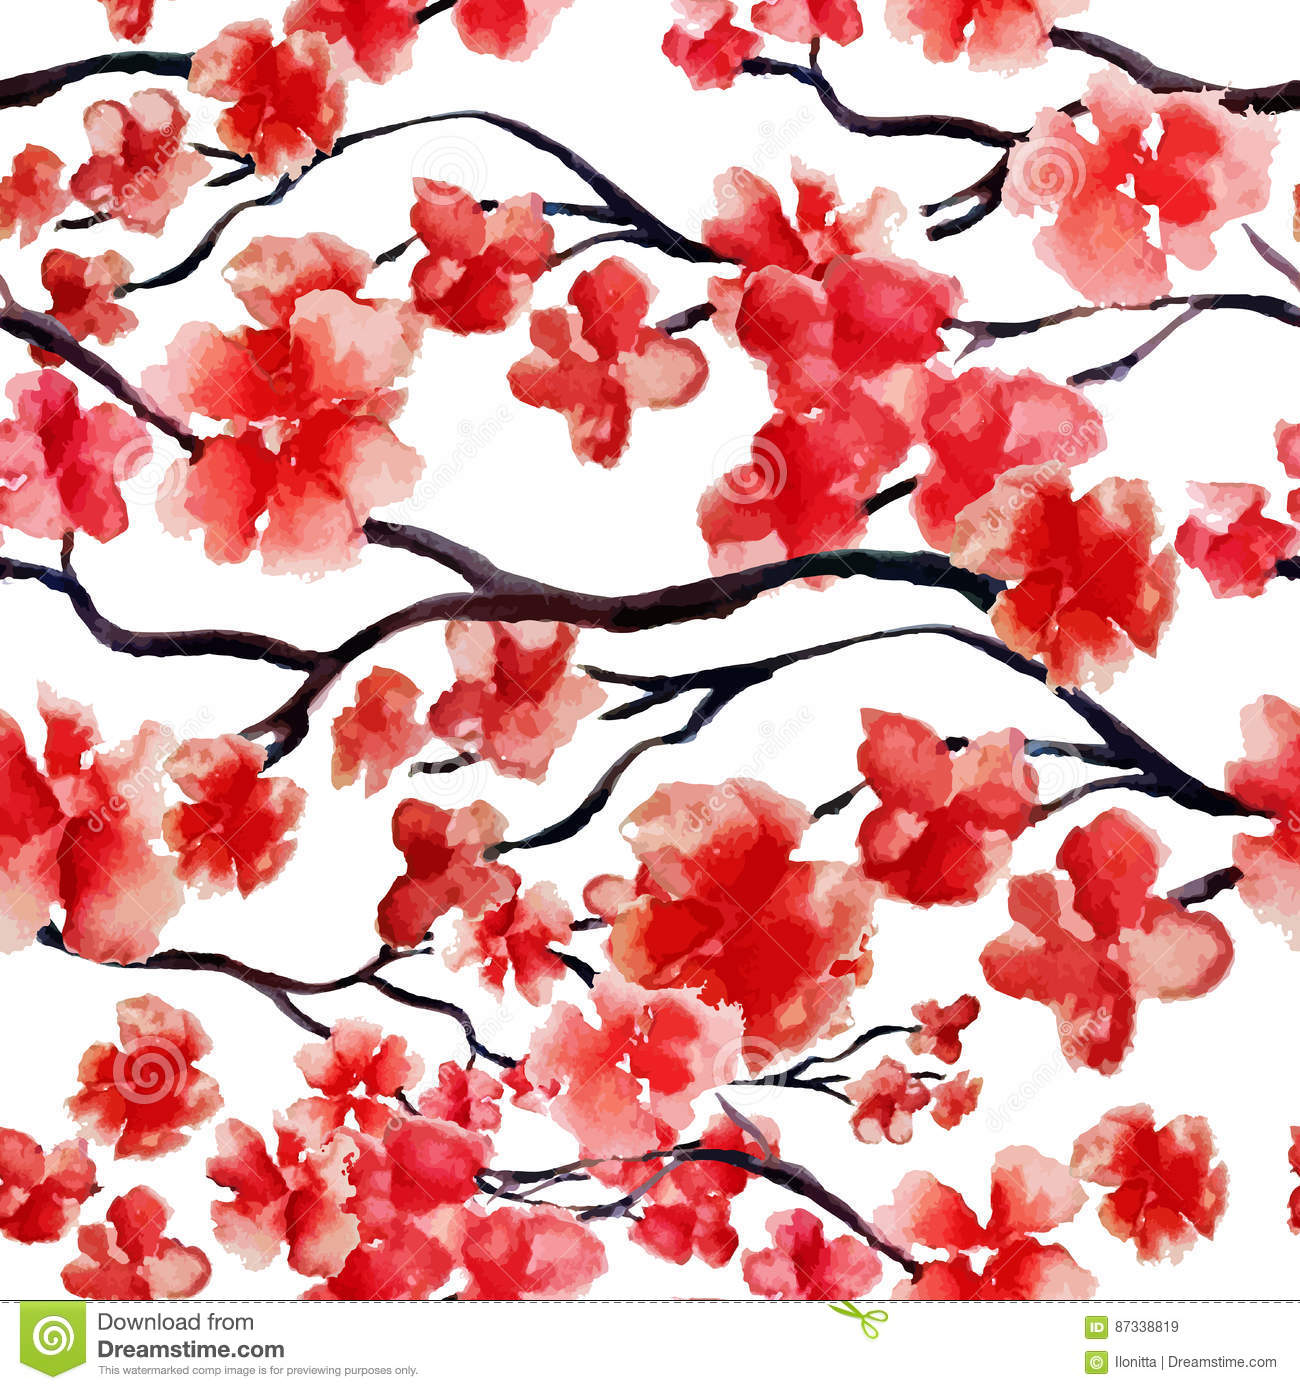 Japanese cherry branch spring blossom, red sakura tree seamless watercolor pattern. Vector illustration, ready for print